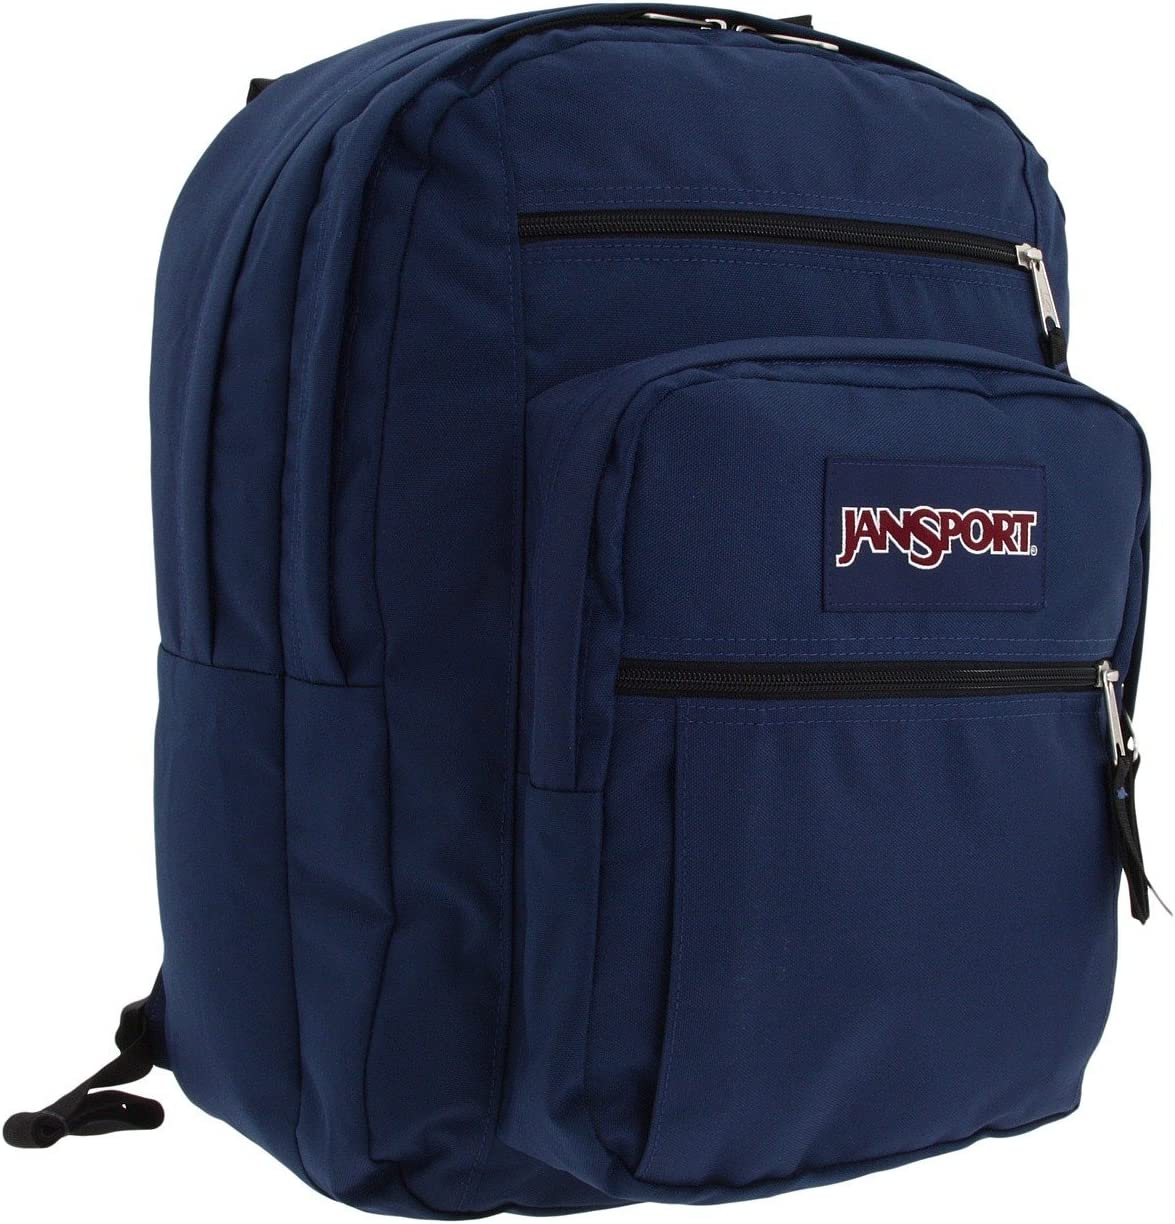 NAVY 2 JanSport Big Student Backpack